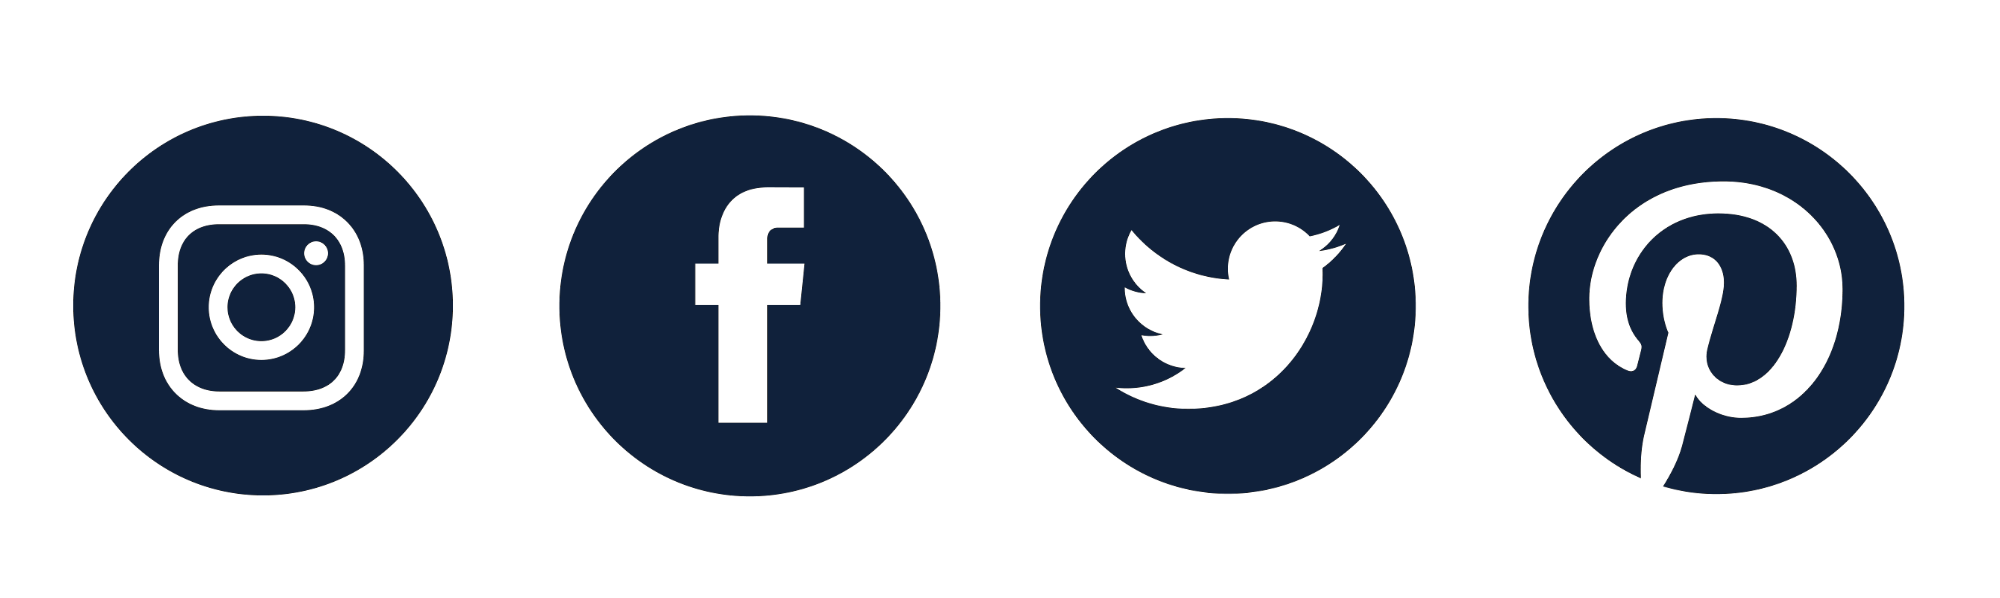 Social Media Icons Updated PNG.png